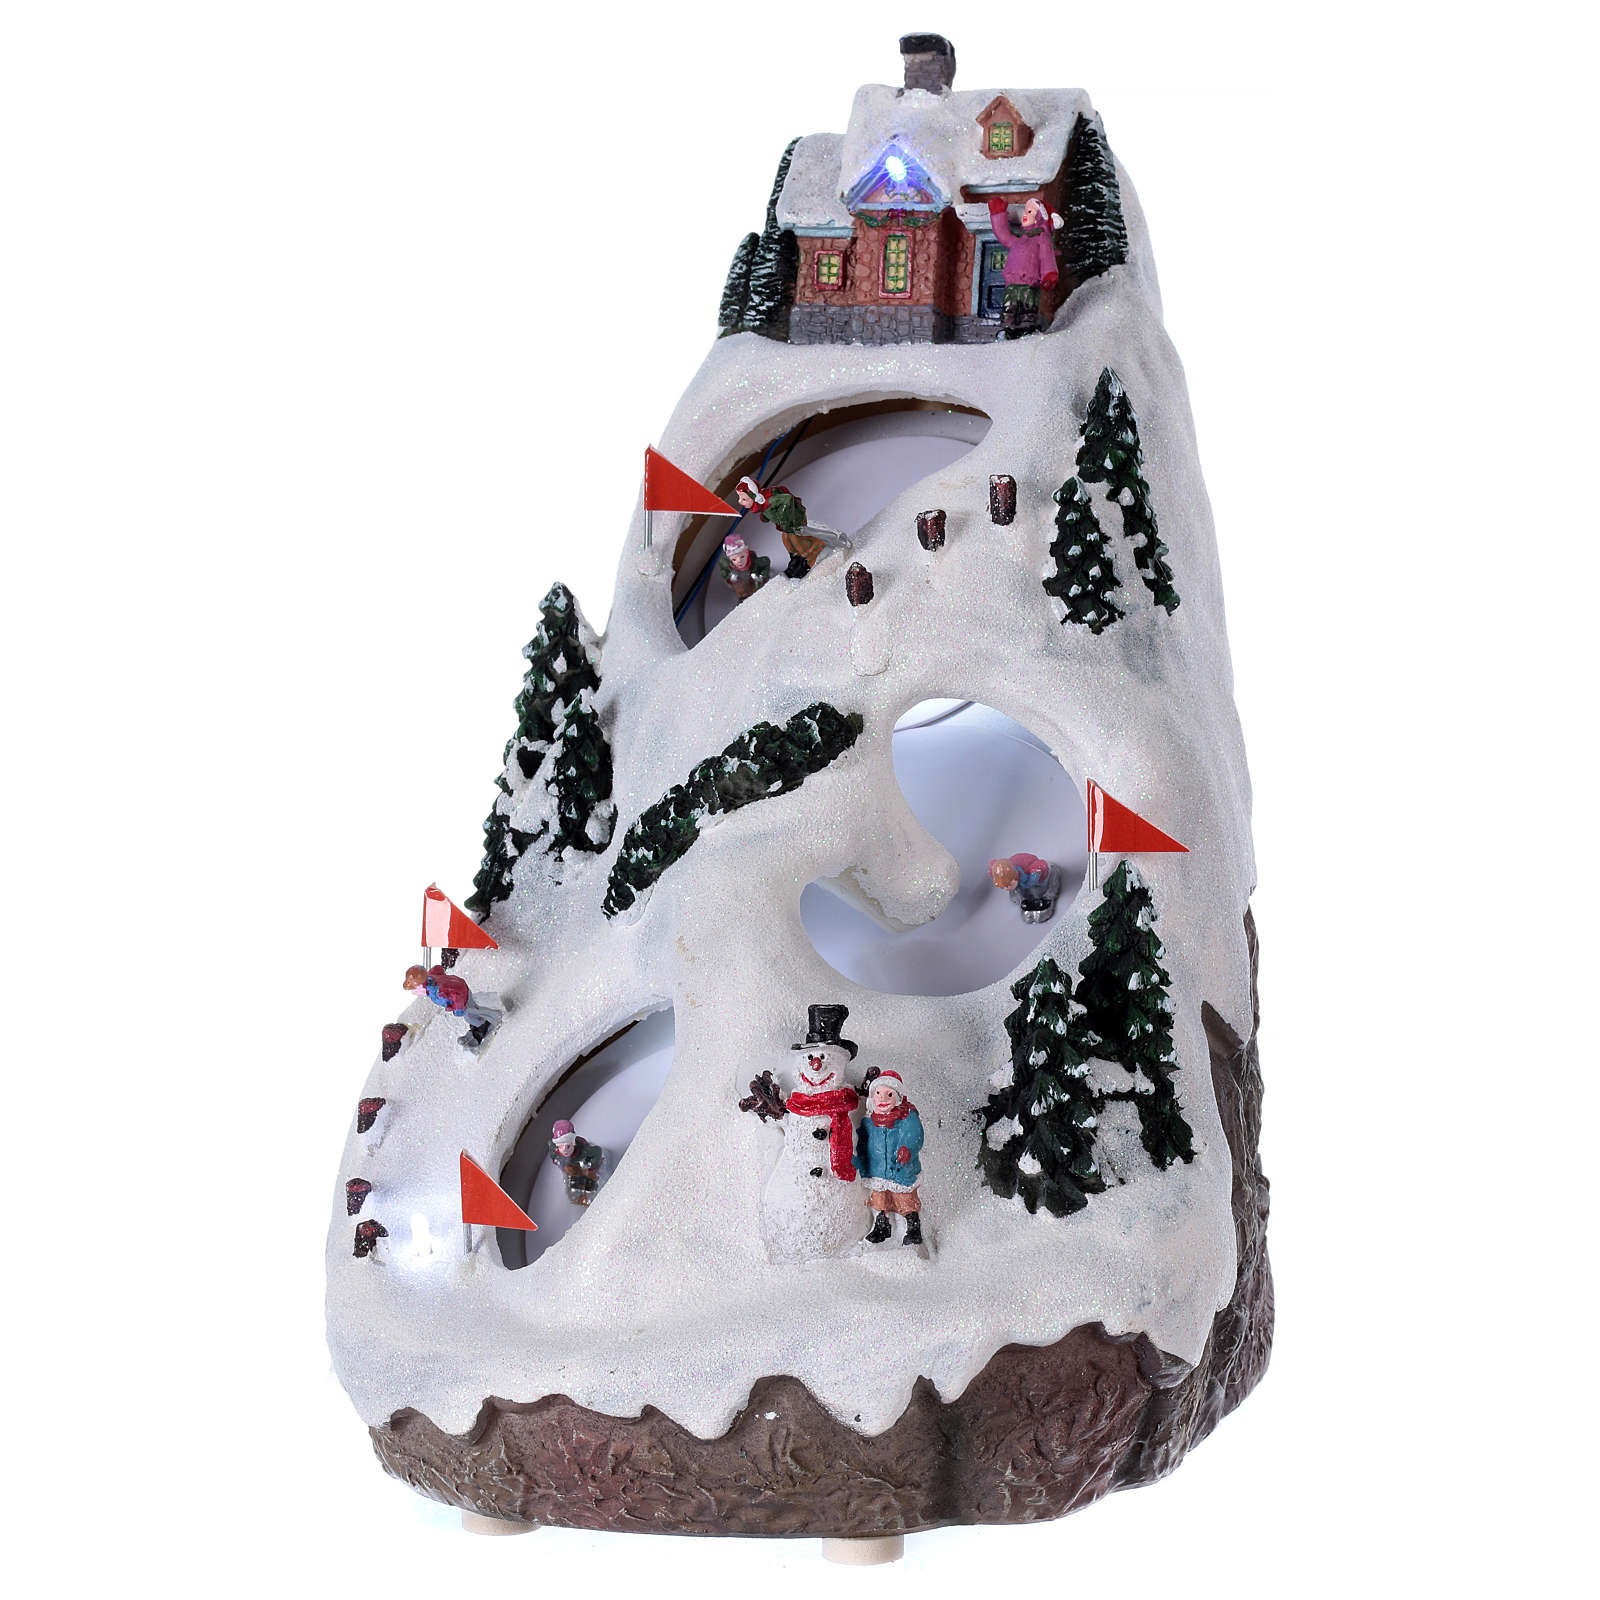 Christmas village illuminated with music movement and skiers 28X19X23 cm 3